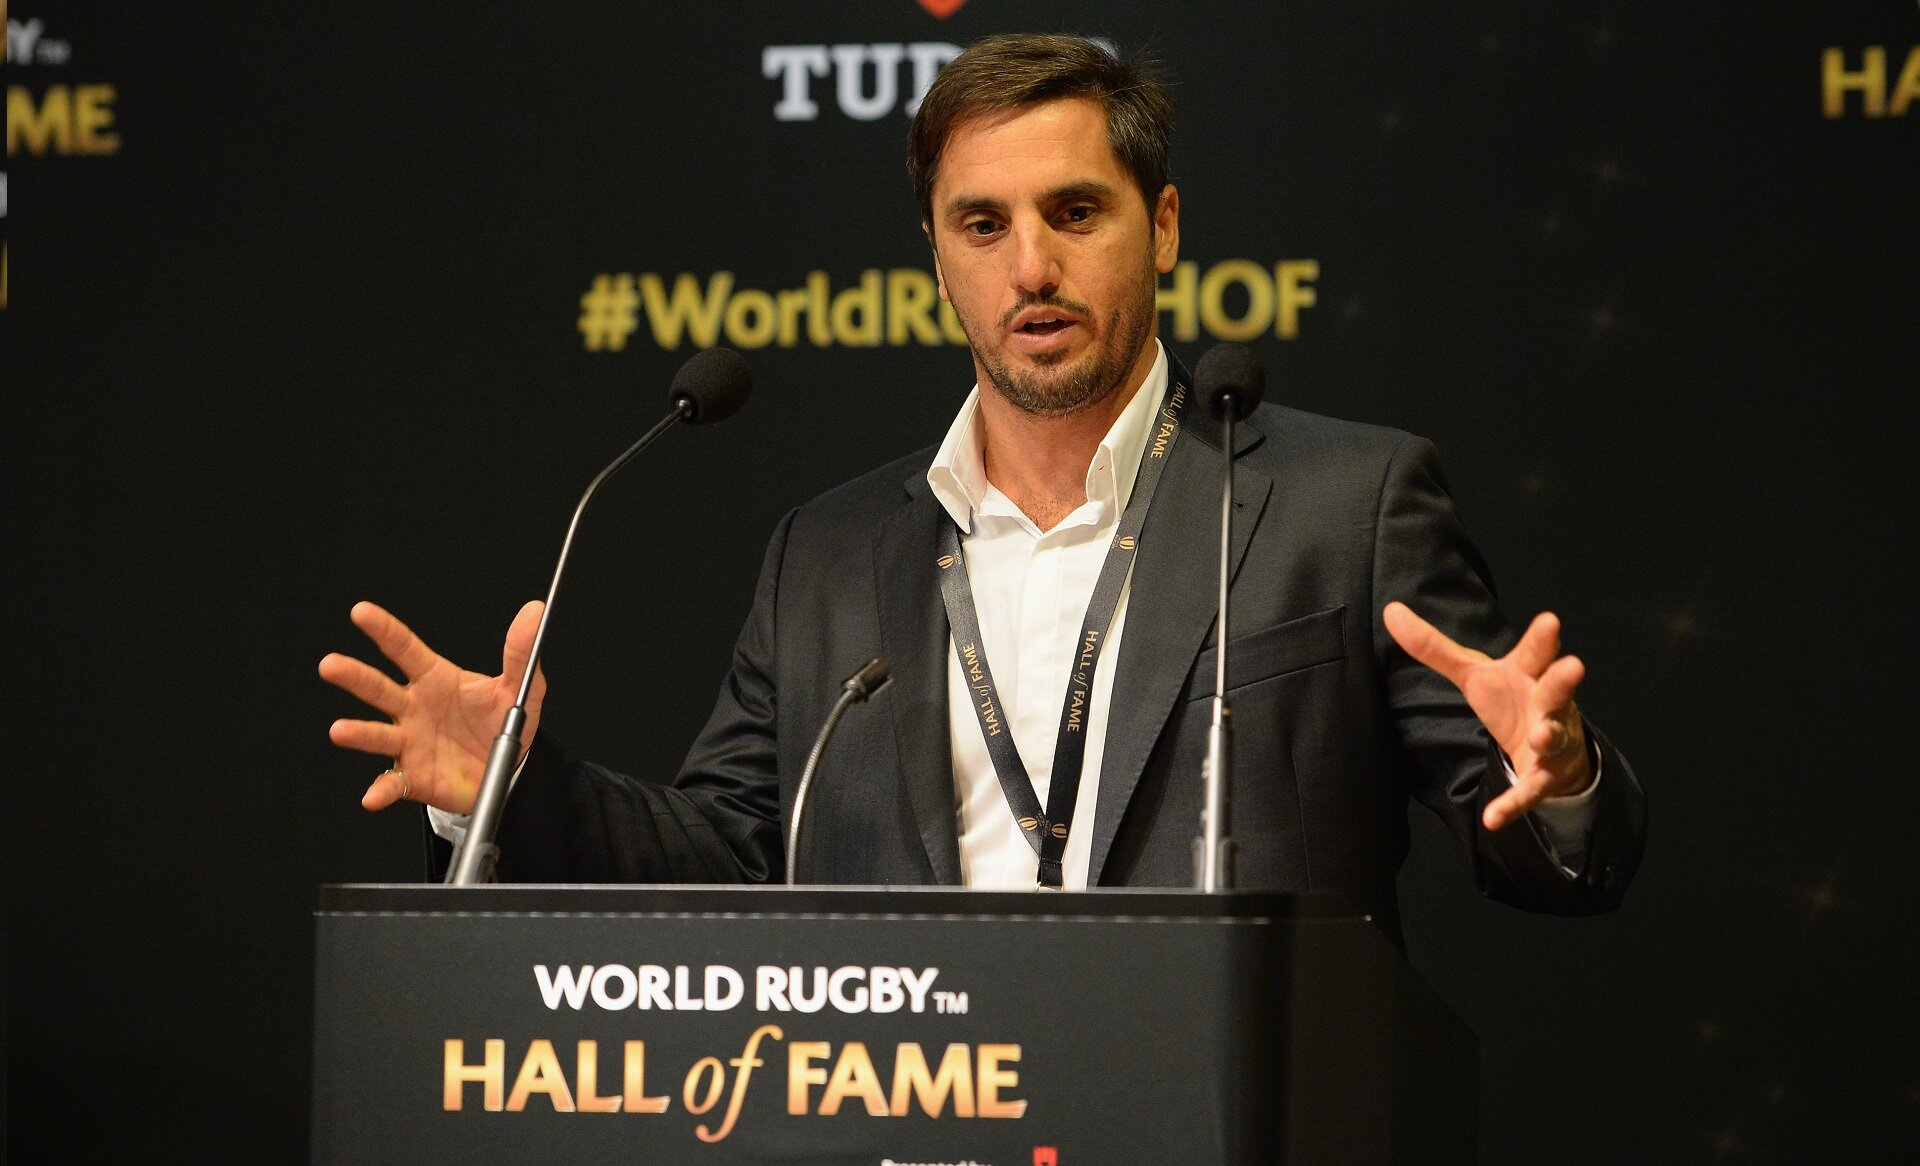 Big-thinking Argentinian Agustin Pichot to run for World Rugby's top position